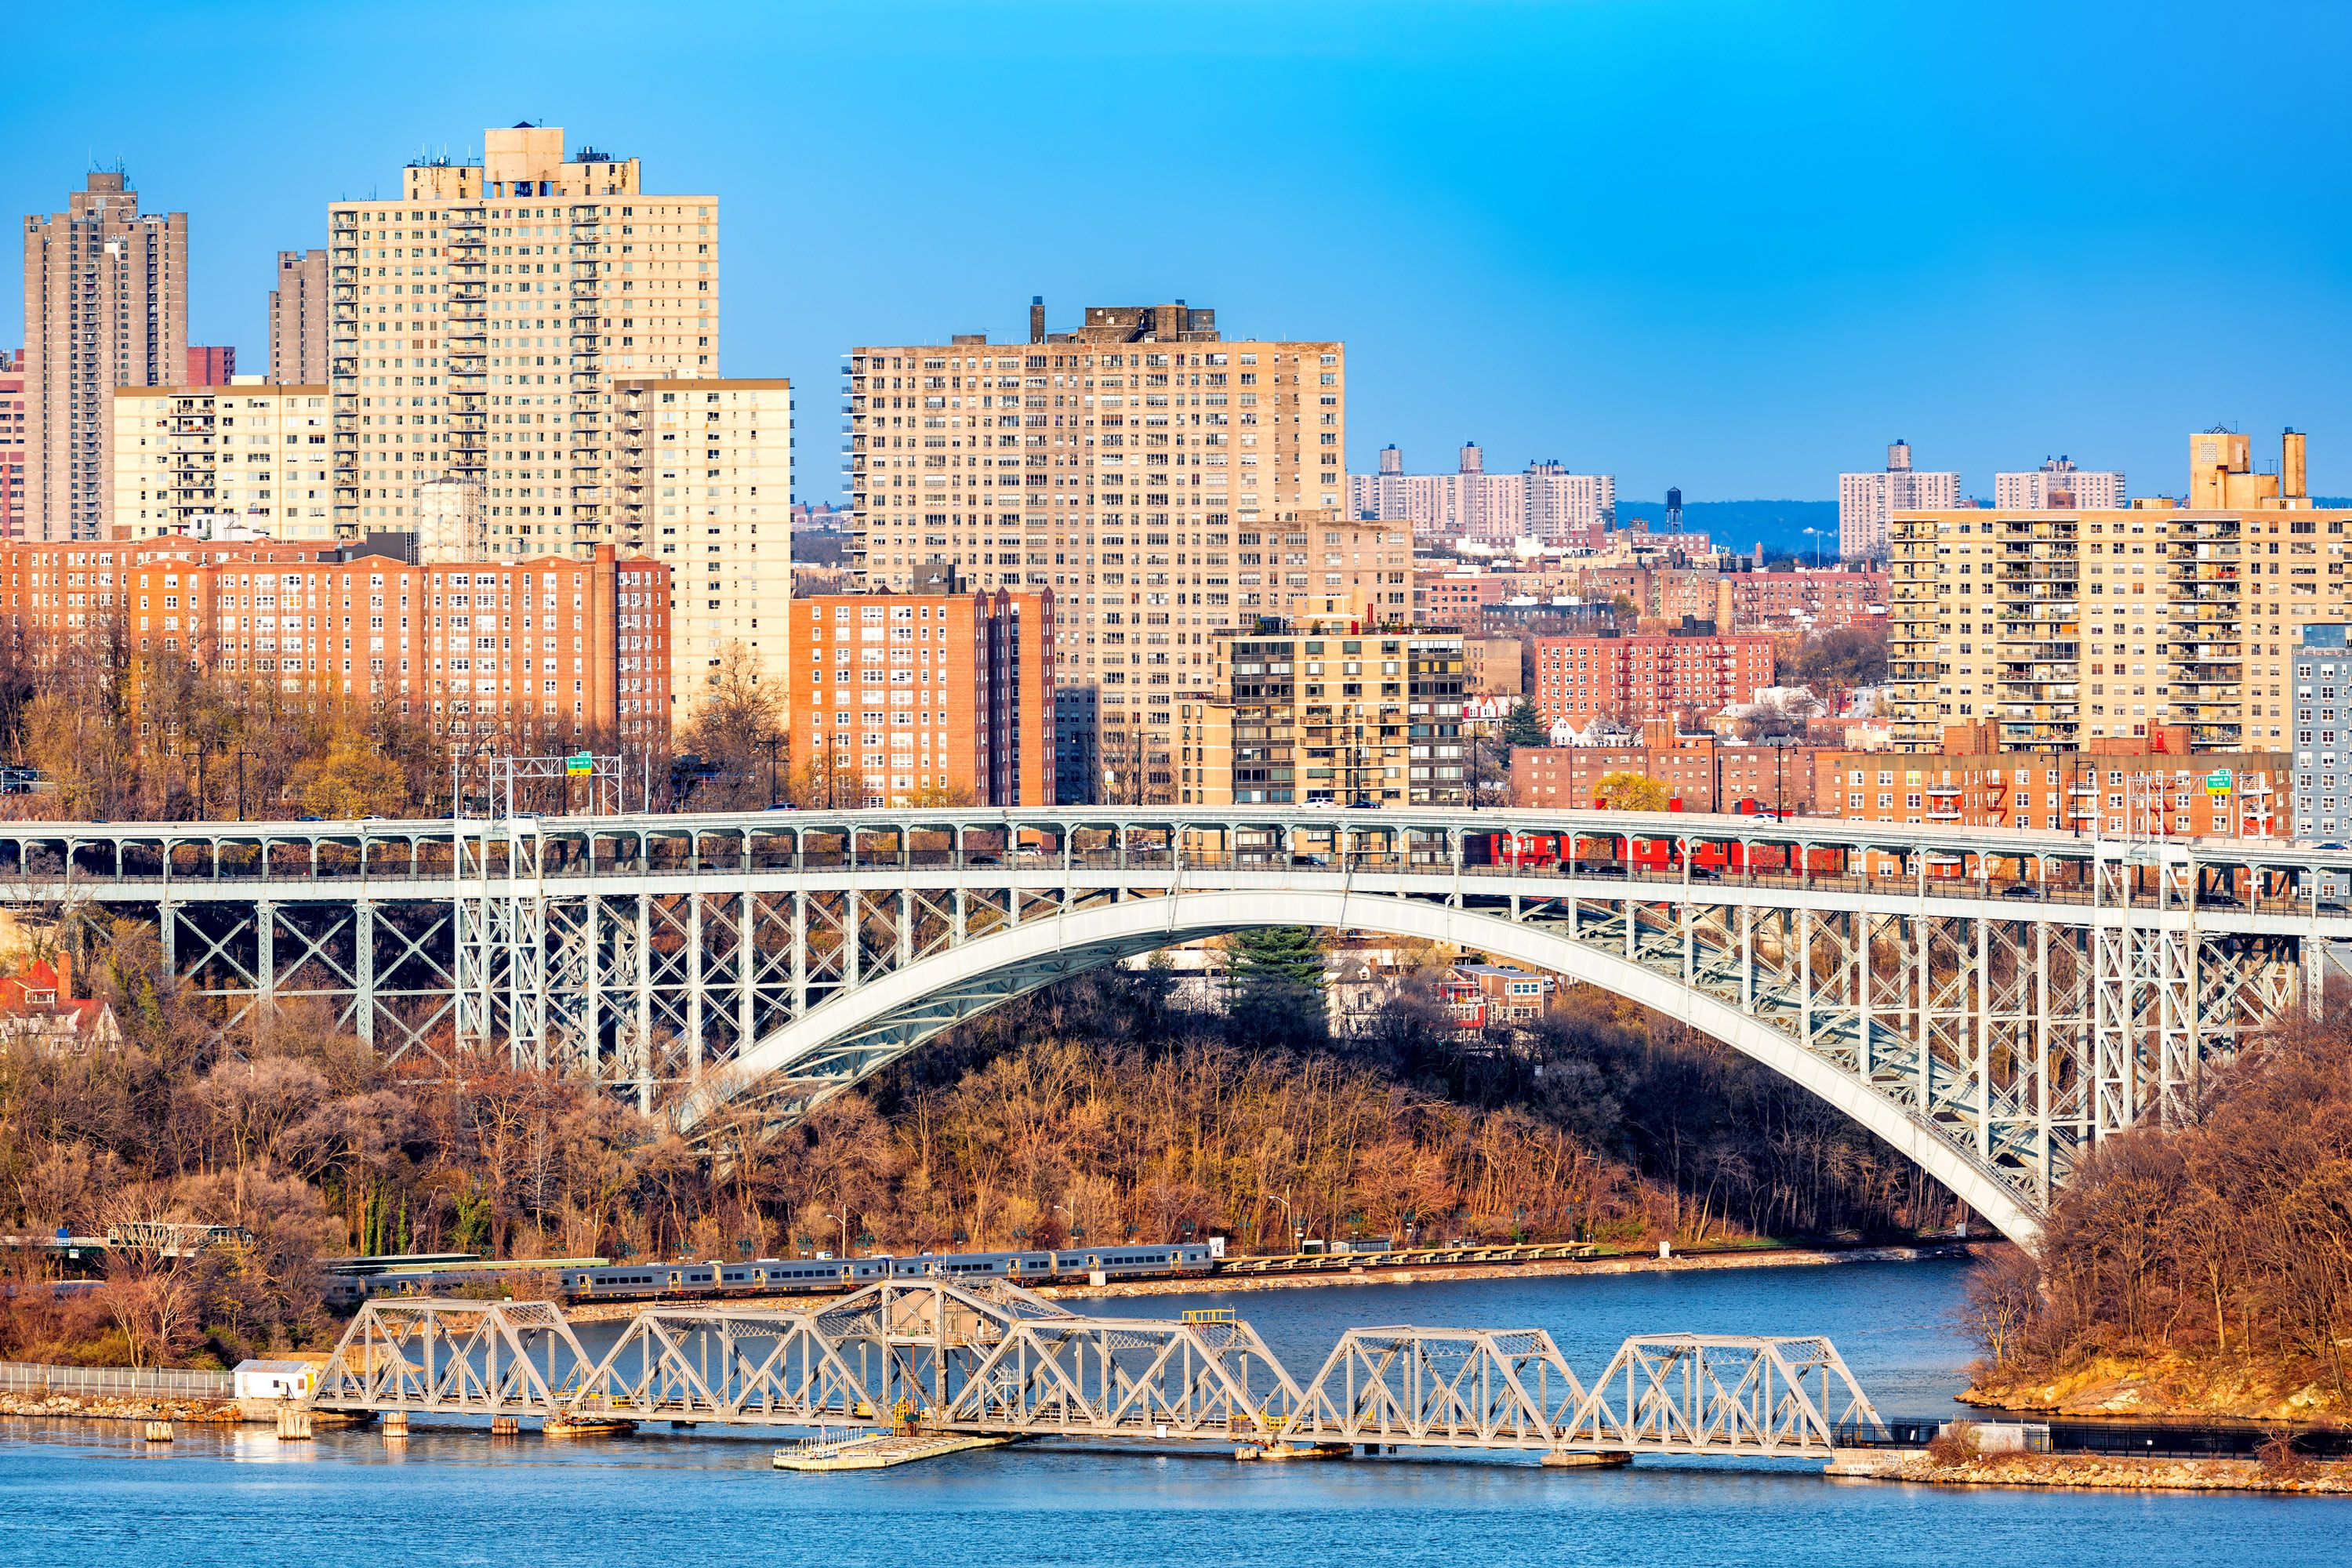 The Henry Hudson Bridge connecting northern Manhattan with The Bronx.